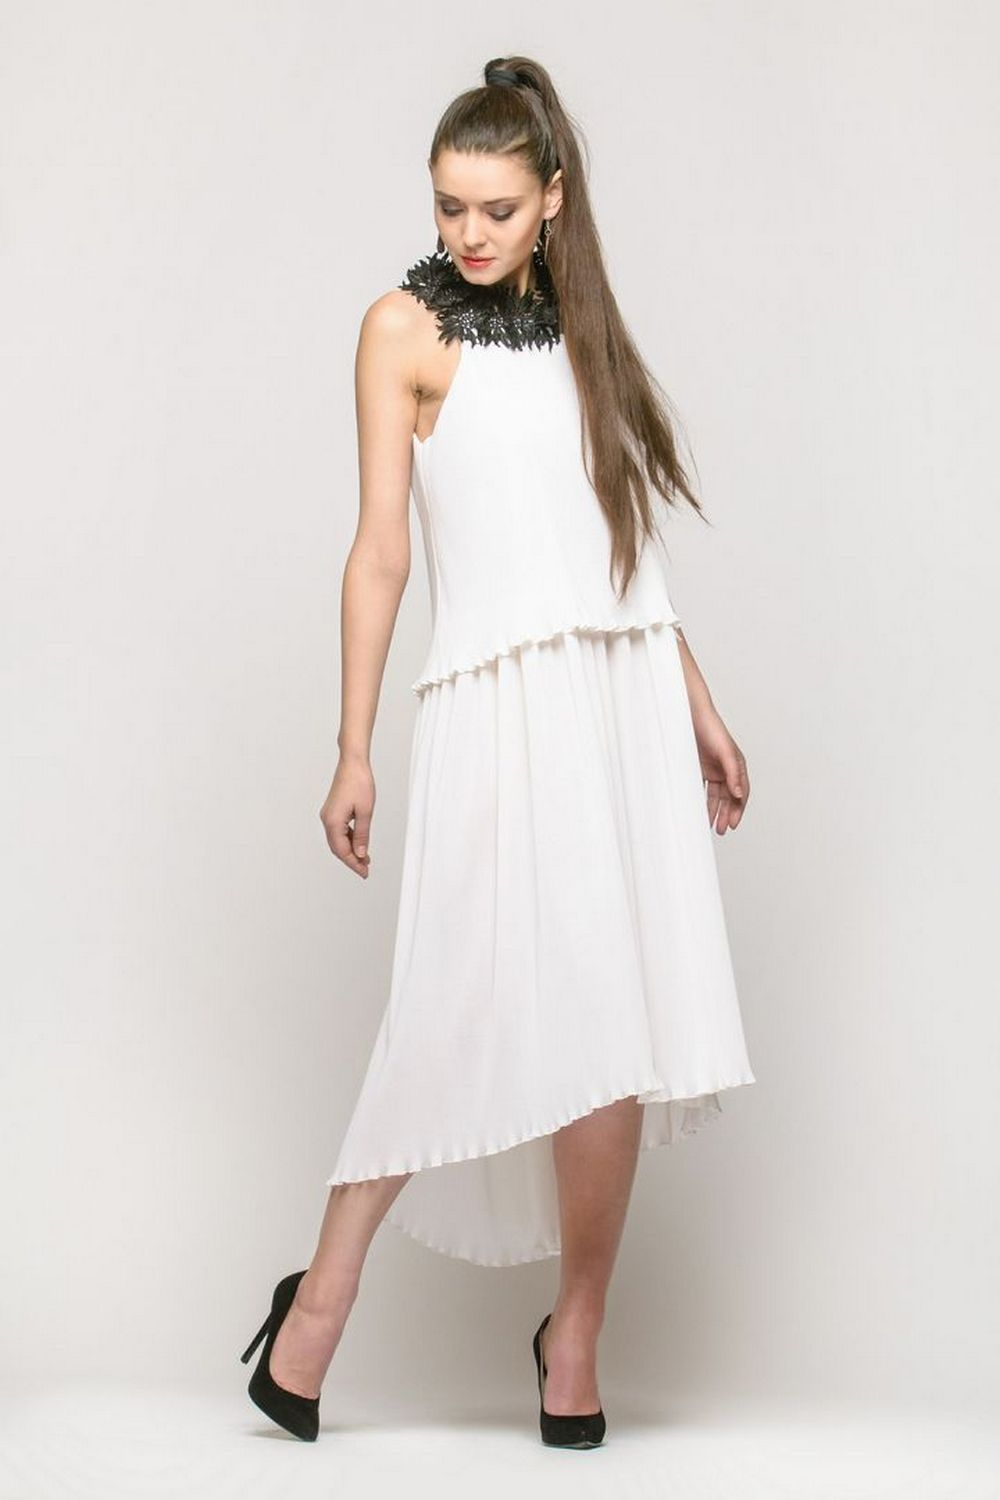 Buy Evening asymmetrical white cotton dress, Sleeveless dress with decor, Party elegant dress